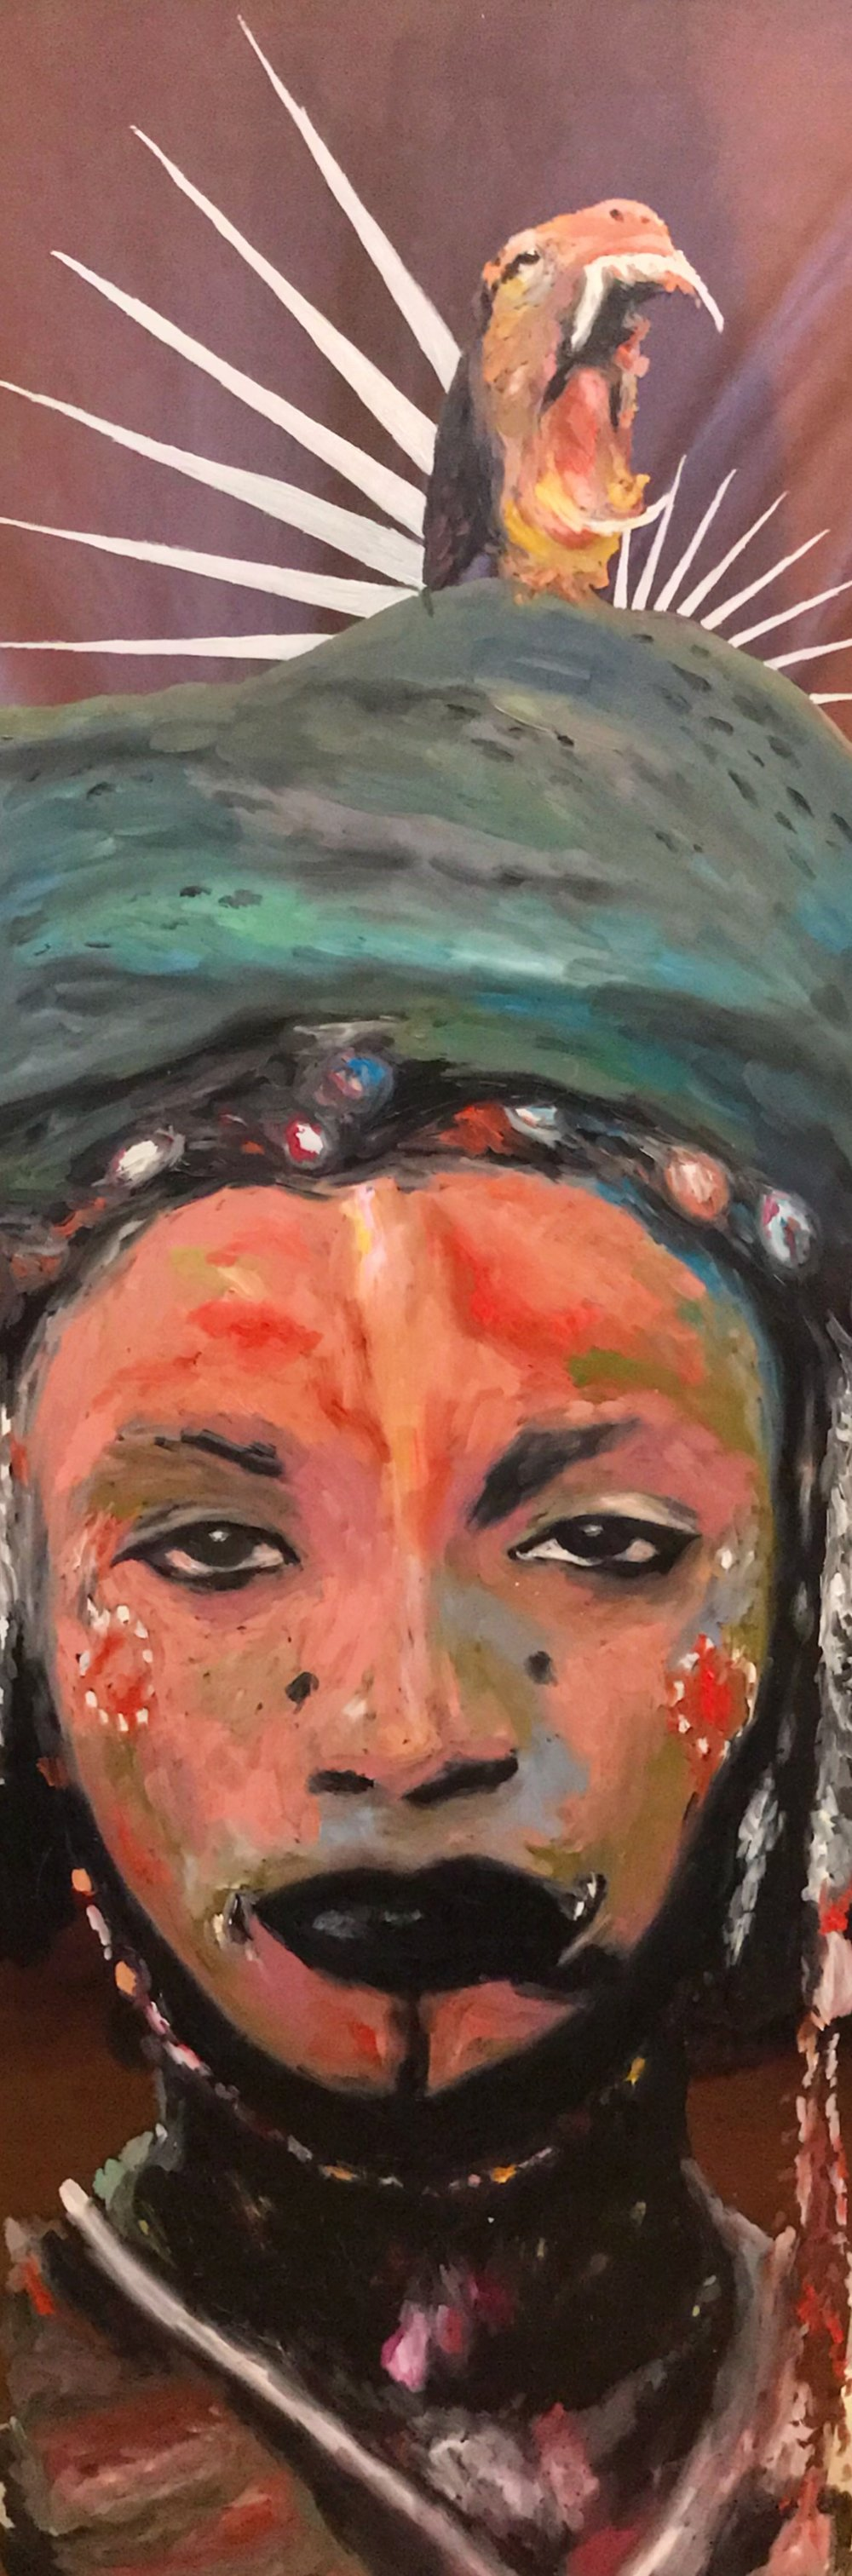 Asha Ade (Lively, royal woman) Oil paint on glass. November 2017.